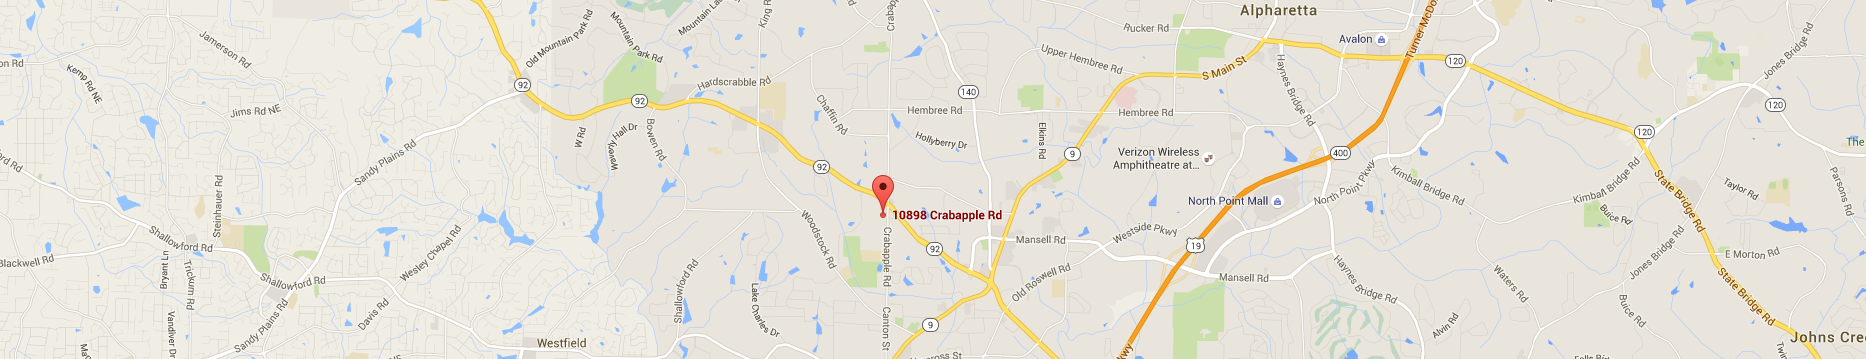 10898 Crabapple Rd   Google Maps